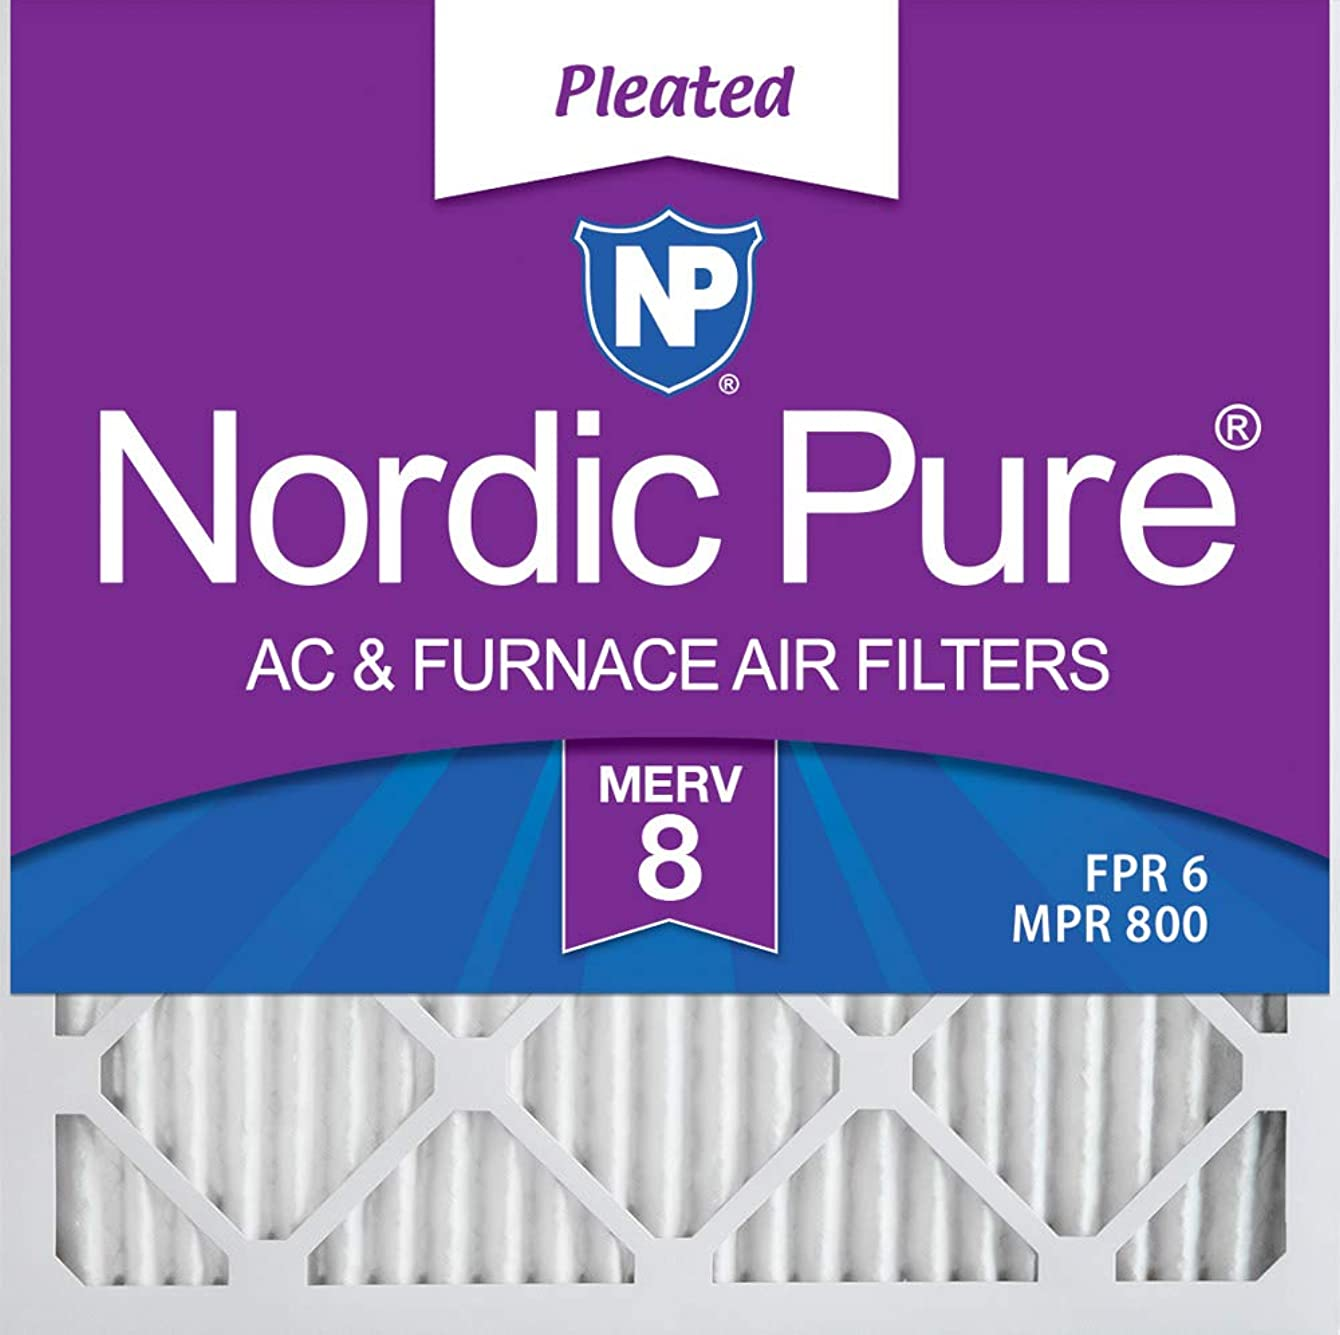 Nordic Pure 20x20x1 MERV 8 Pleated AC Furnace Air Filters, 20x20x1M8-6, 6 Pack nkfhzcjlskvcx65